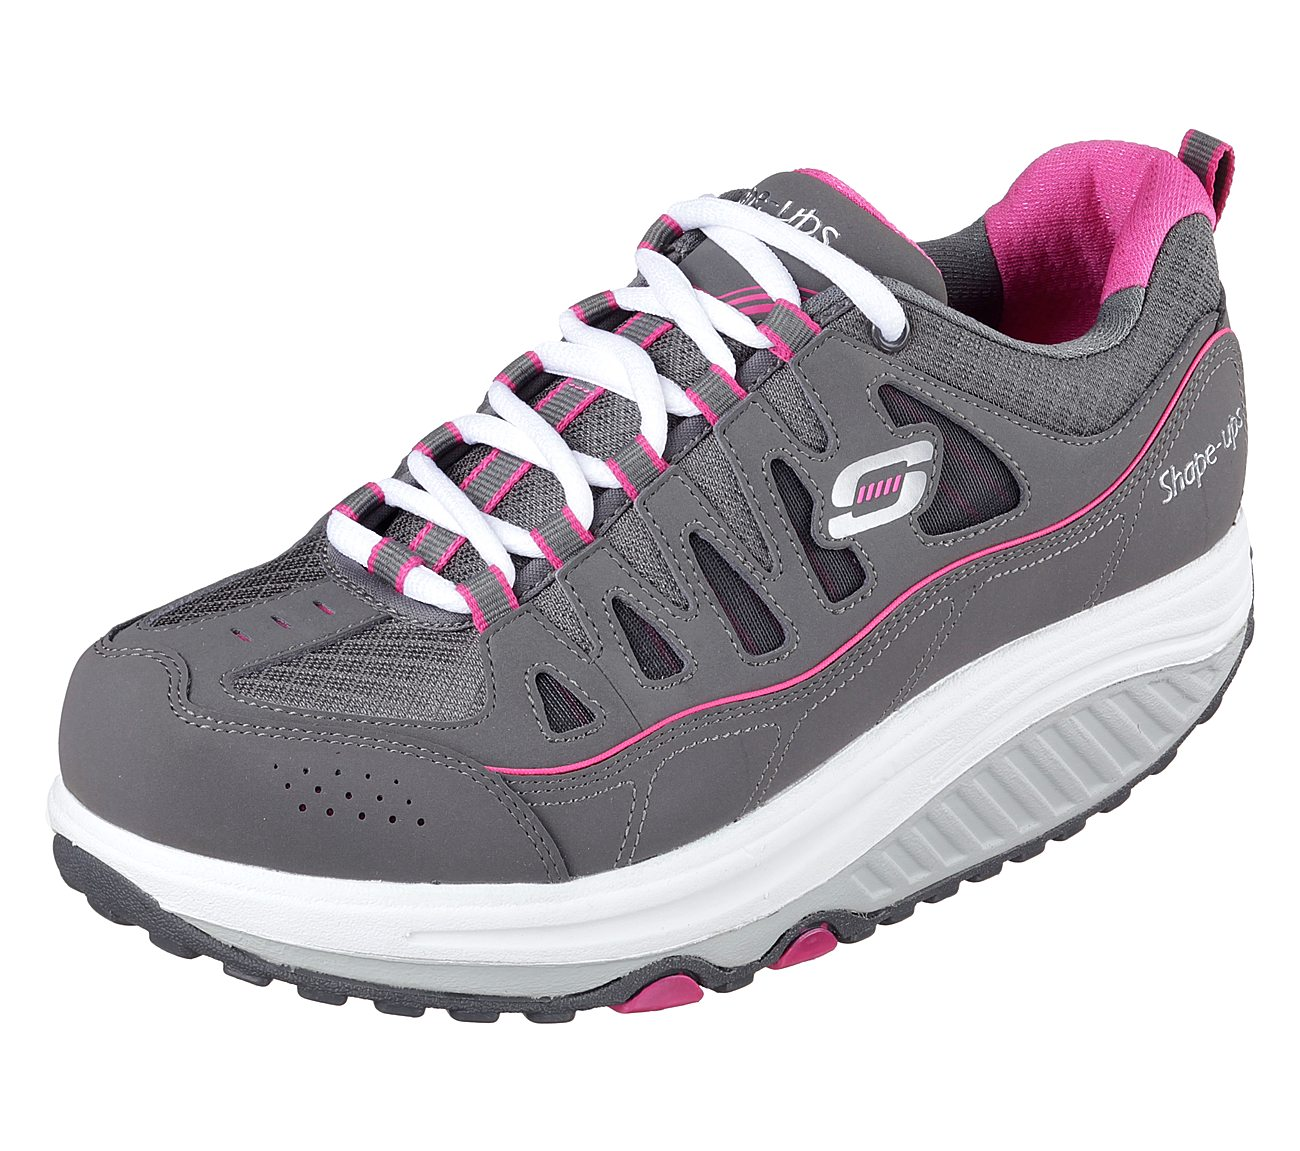 skechers shape ups in stores